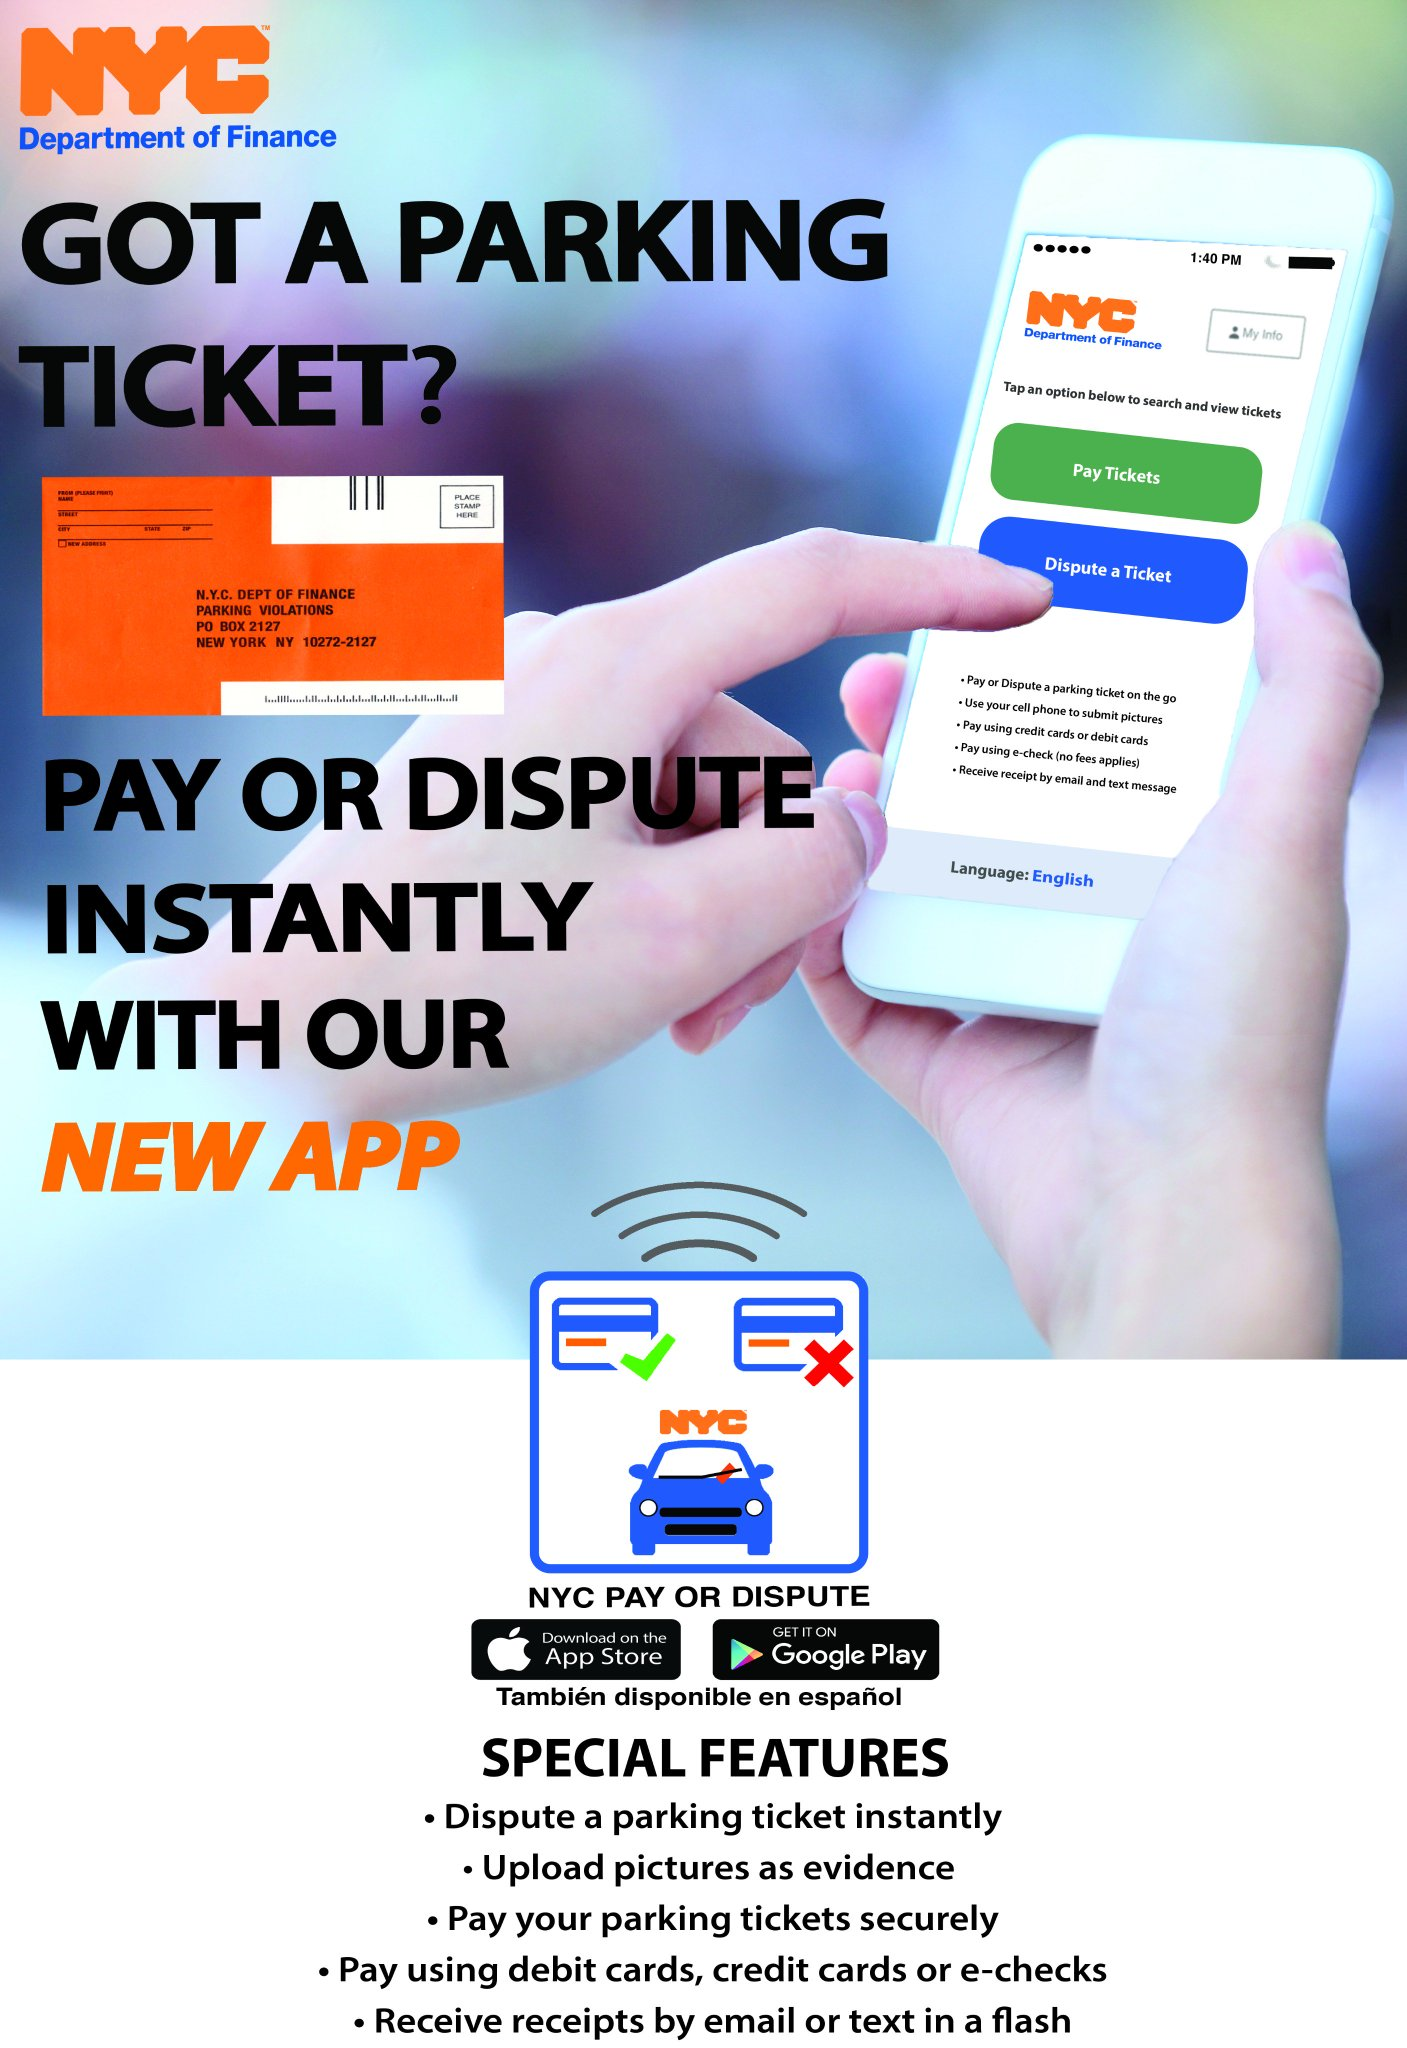 Nyc Department Of Finance Parking Violations : department, finance, parking, violations, Finance, Twitter:, Parking, Ticket, 🅿️🚘, W/ease.Download, Dispute, #nycpayordispute, Today!, Payments, Easily, Mobile, Device.…, Https://t.co/EDksLrE6IA